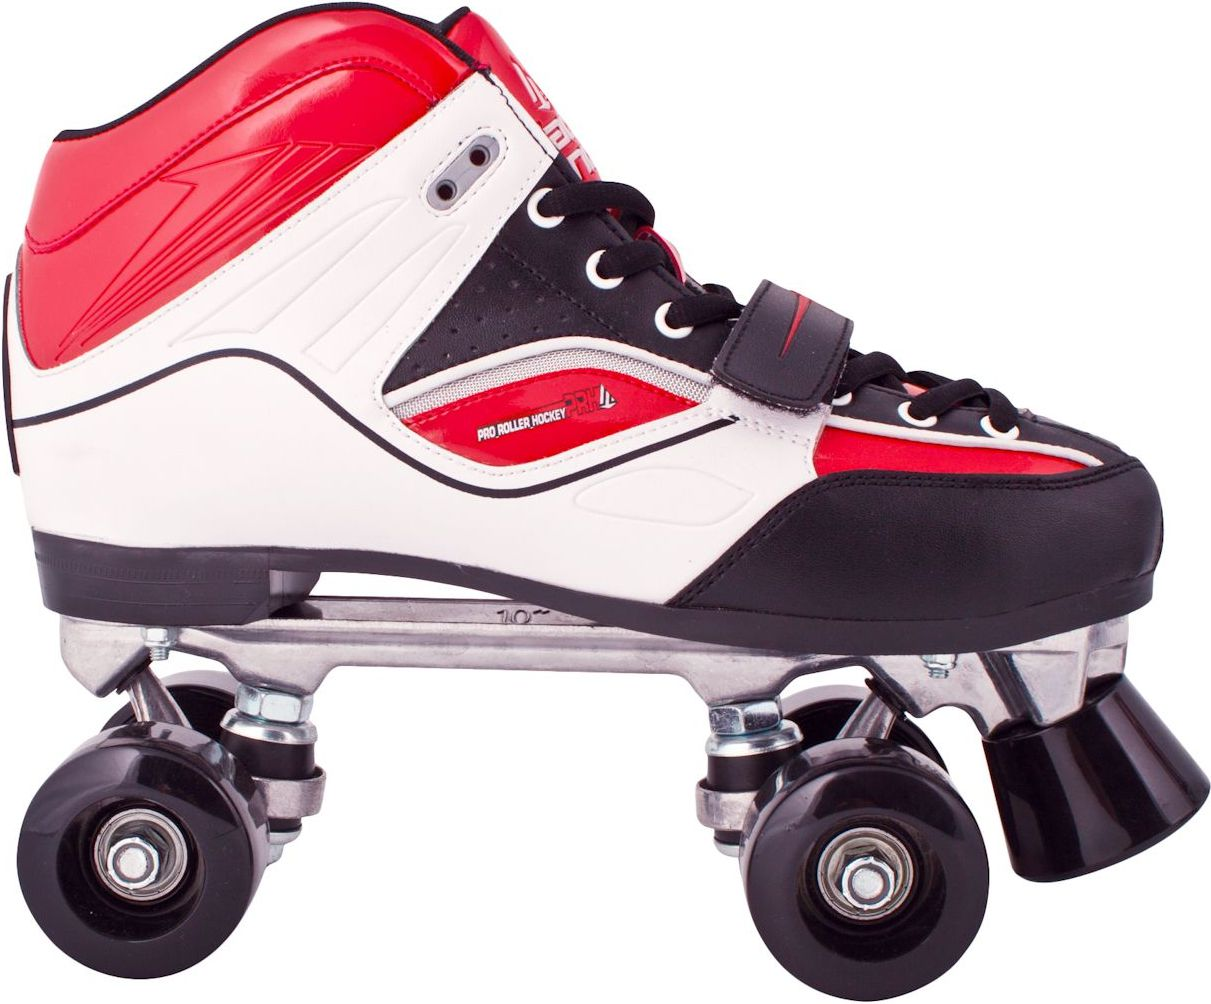 JACK LONDON Wrotki Pro Roller Hockey Senior 231533 rozmiar 41 - WIKR-1012188